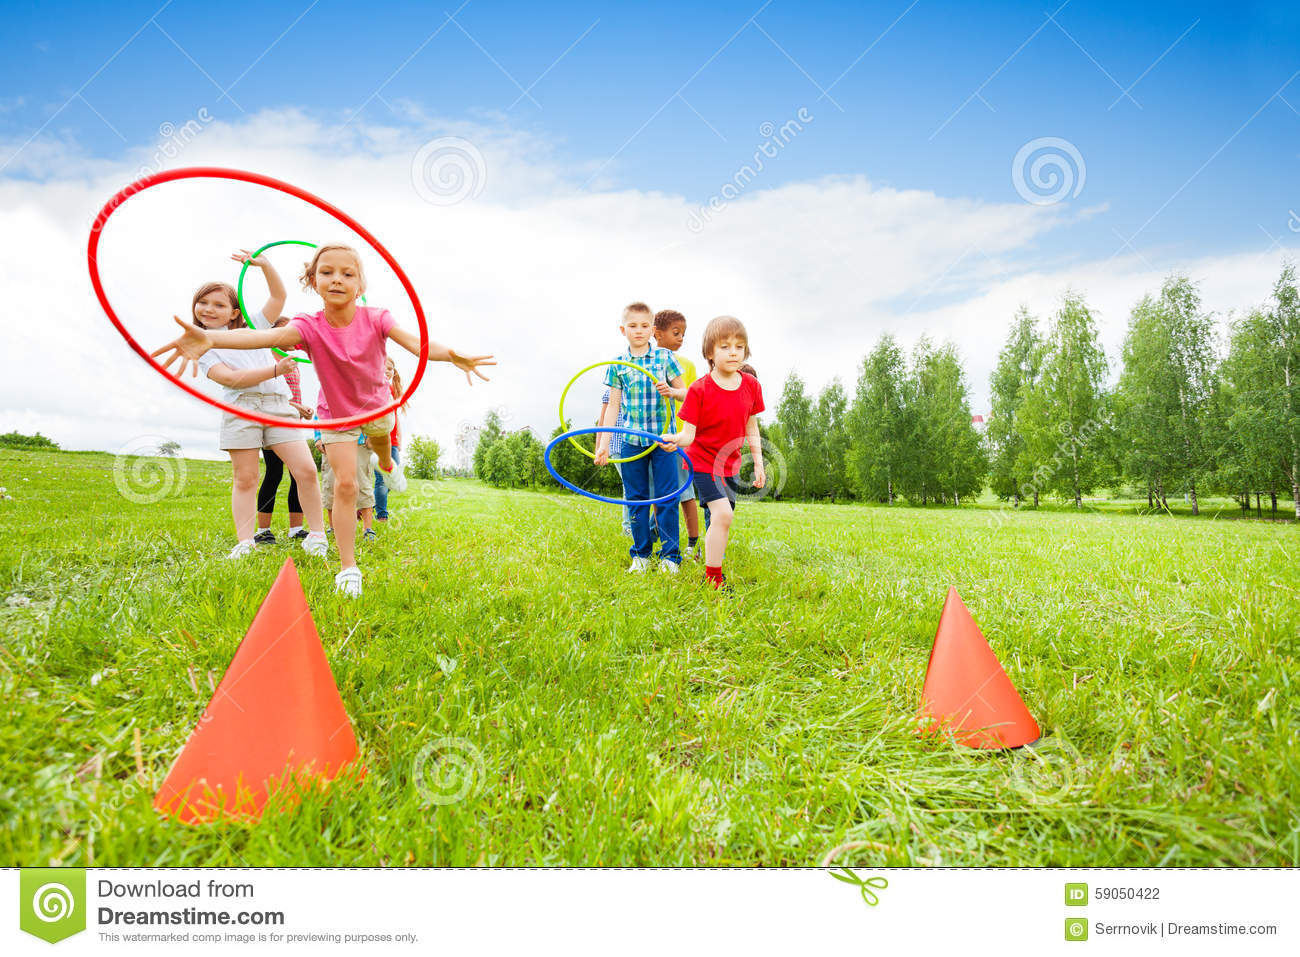 Playful Kids Throwing Colorful Hoops On Cones Stock Photo